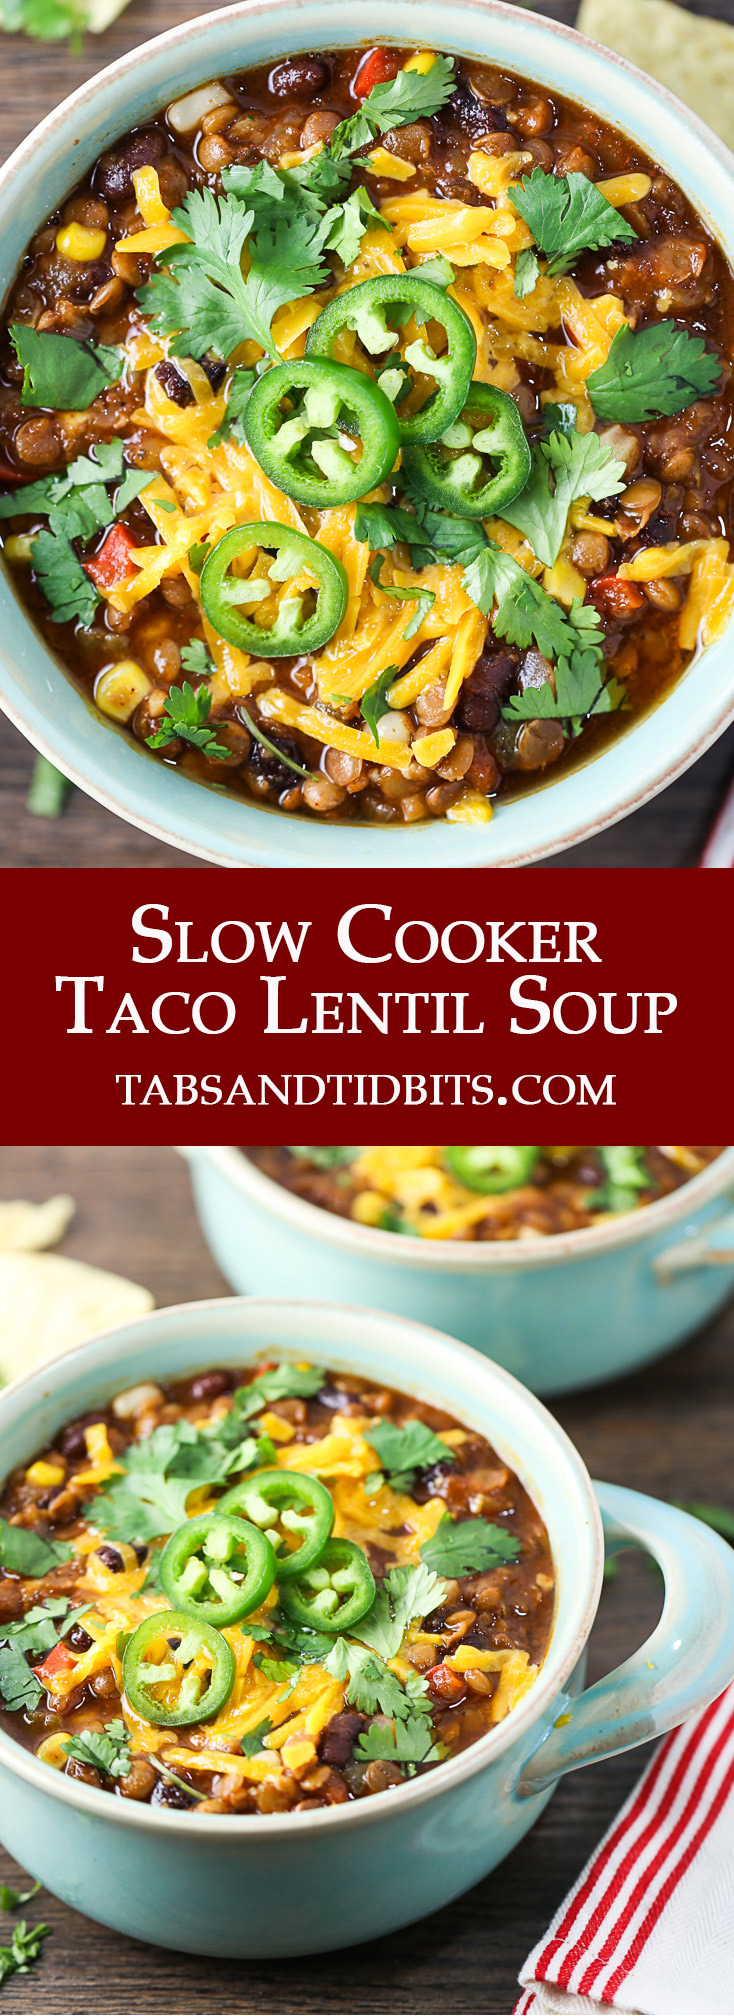 A vegetarian hearty soup filled with protein and amazing mixture of spices!